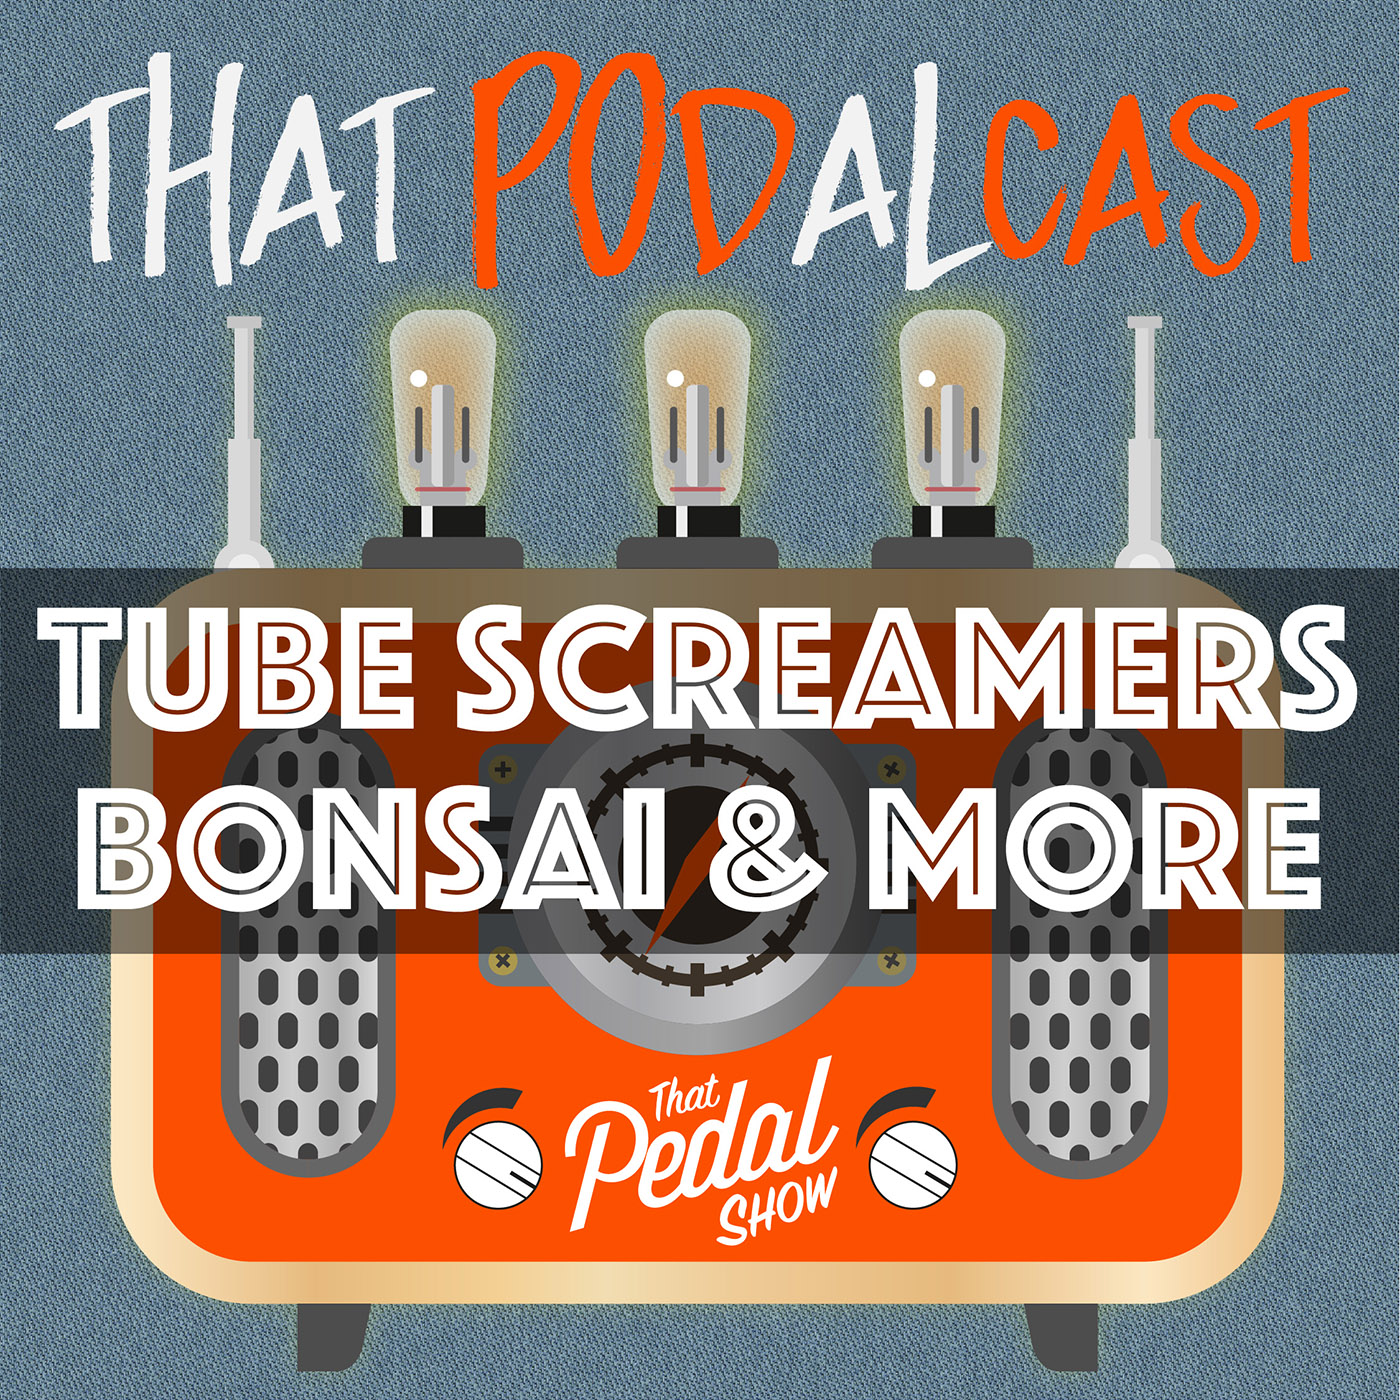 Tube Screamers: 808, 9, 10, Bonsai & More